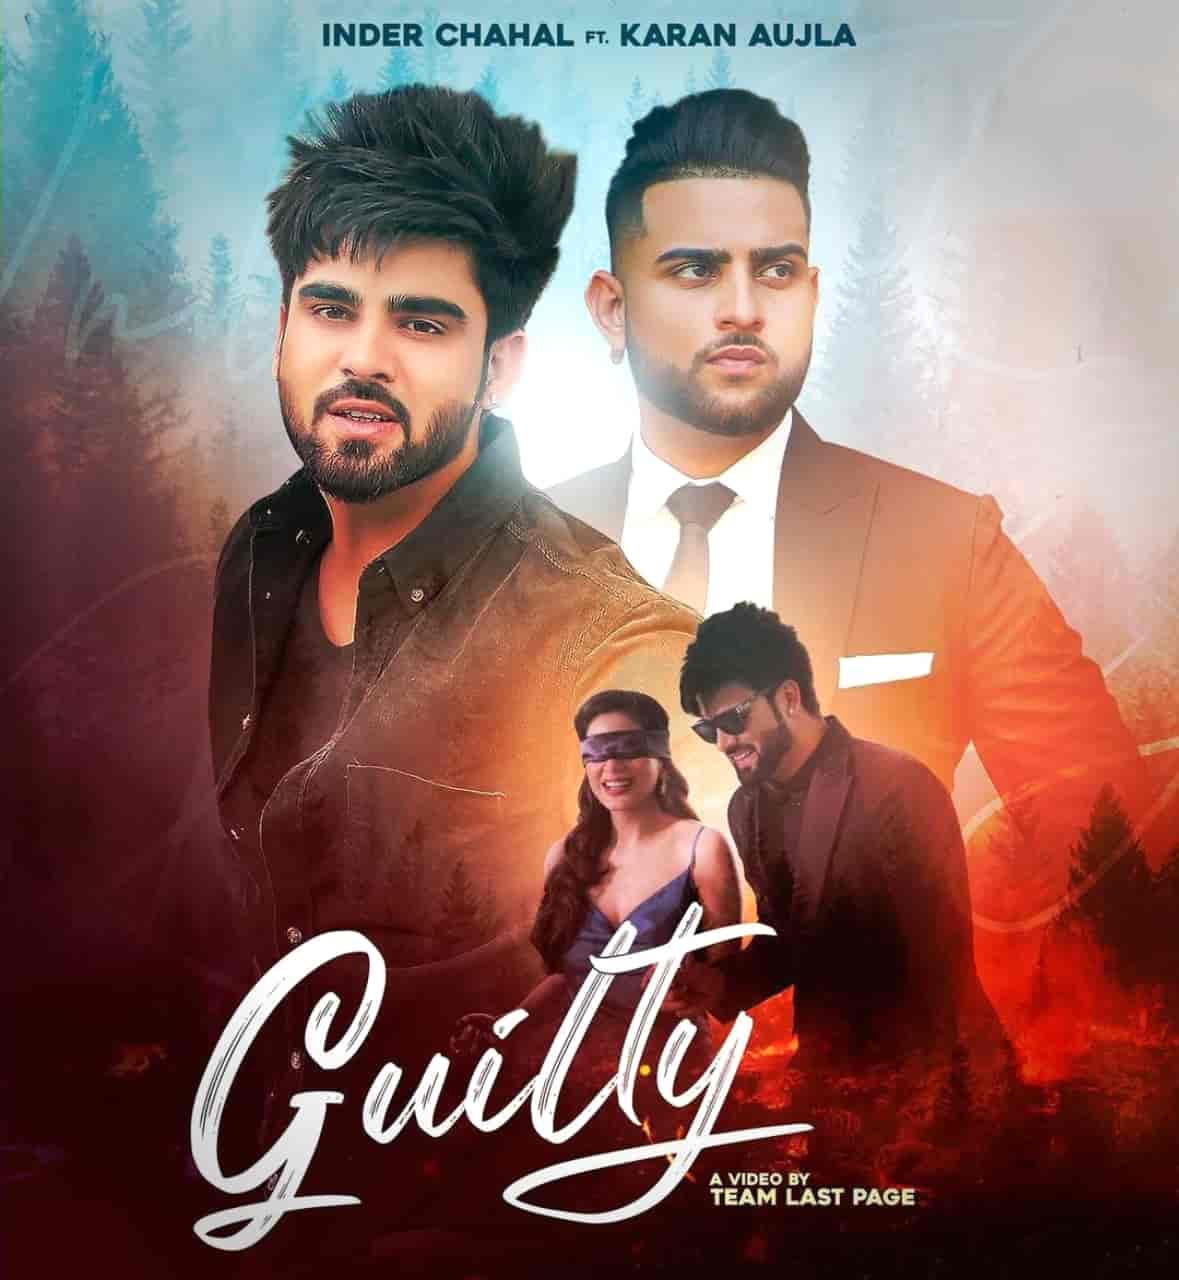 Guilty Sad Punjabi Song Image Features Inder Chahal And Karan Aujla